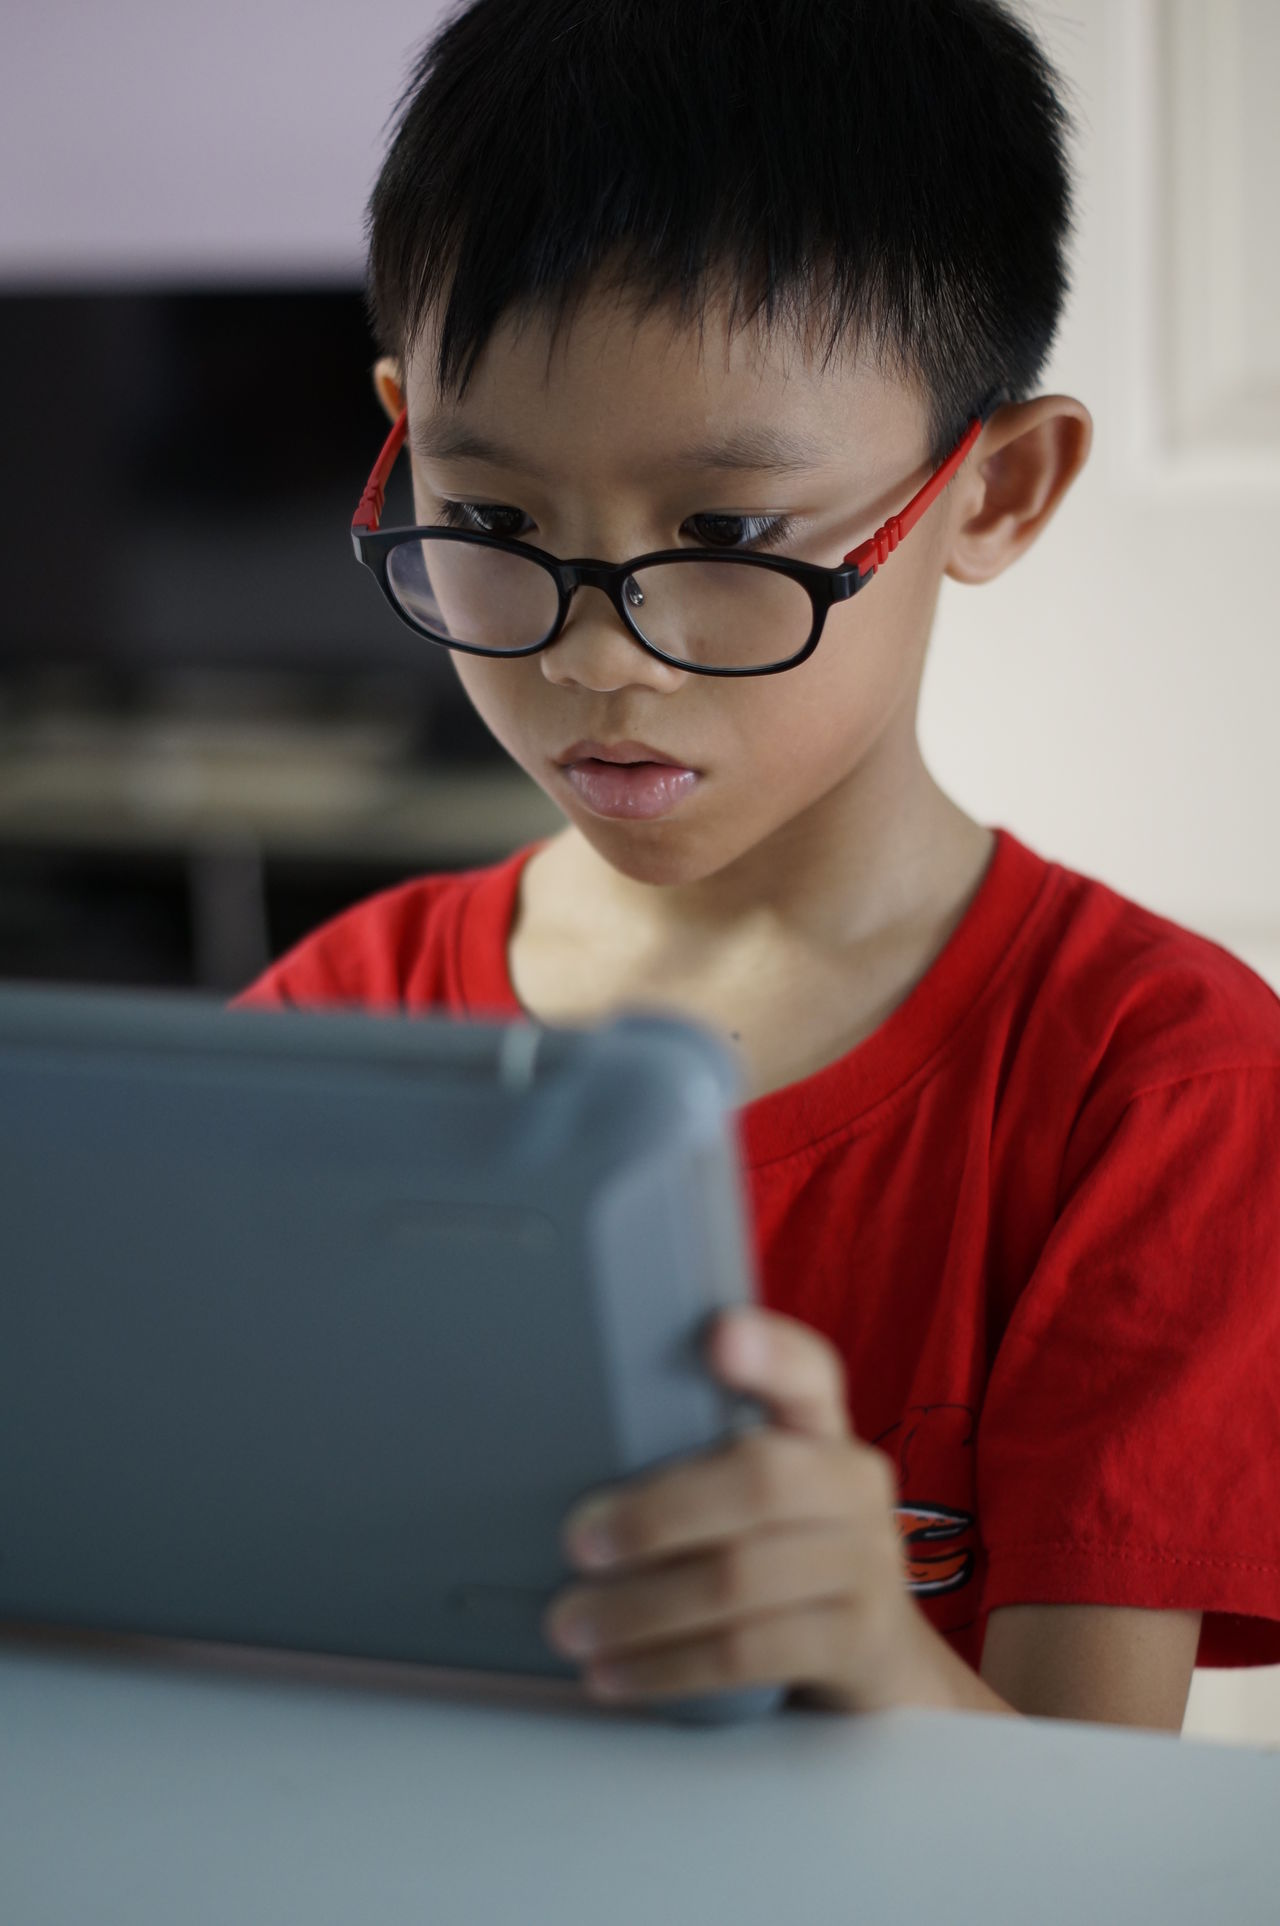 Boy play game online in ipad. Childhood Children With Tablet Children With Toys Close-up Digital Tablet Game Online Headshot Indoors  Ipad Lifestyles One Person Online Game Real People Technology Watching Ipad Watching Laptop